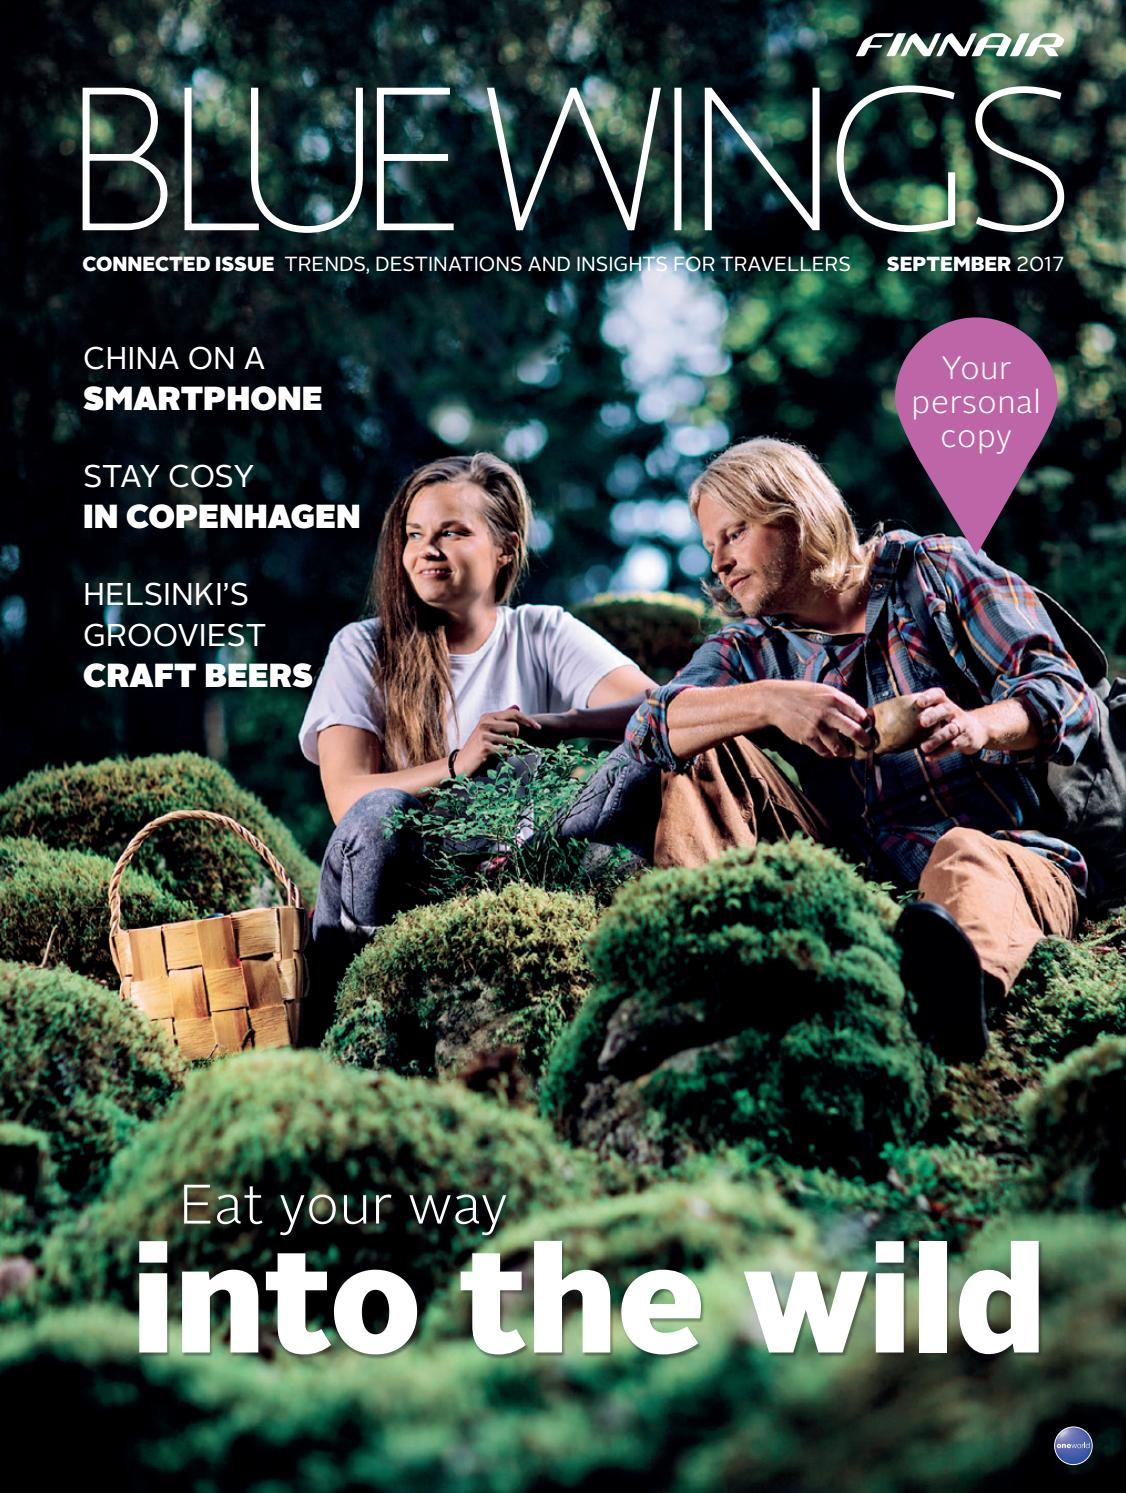 Blue Wings Connected issue September 2017 by Finnair_BlueWings - issuu